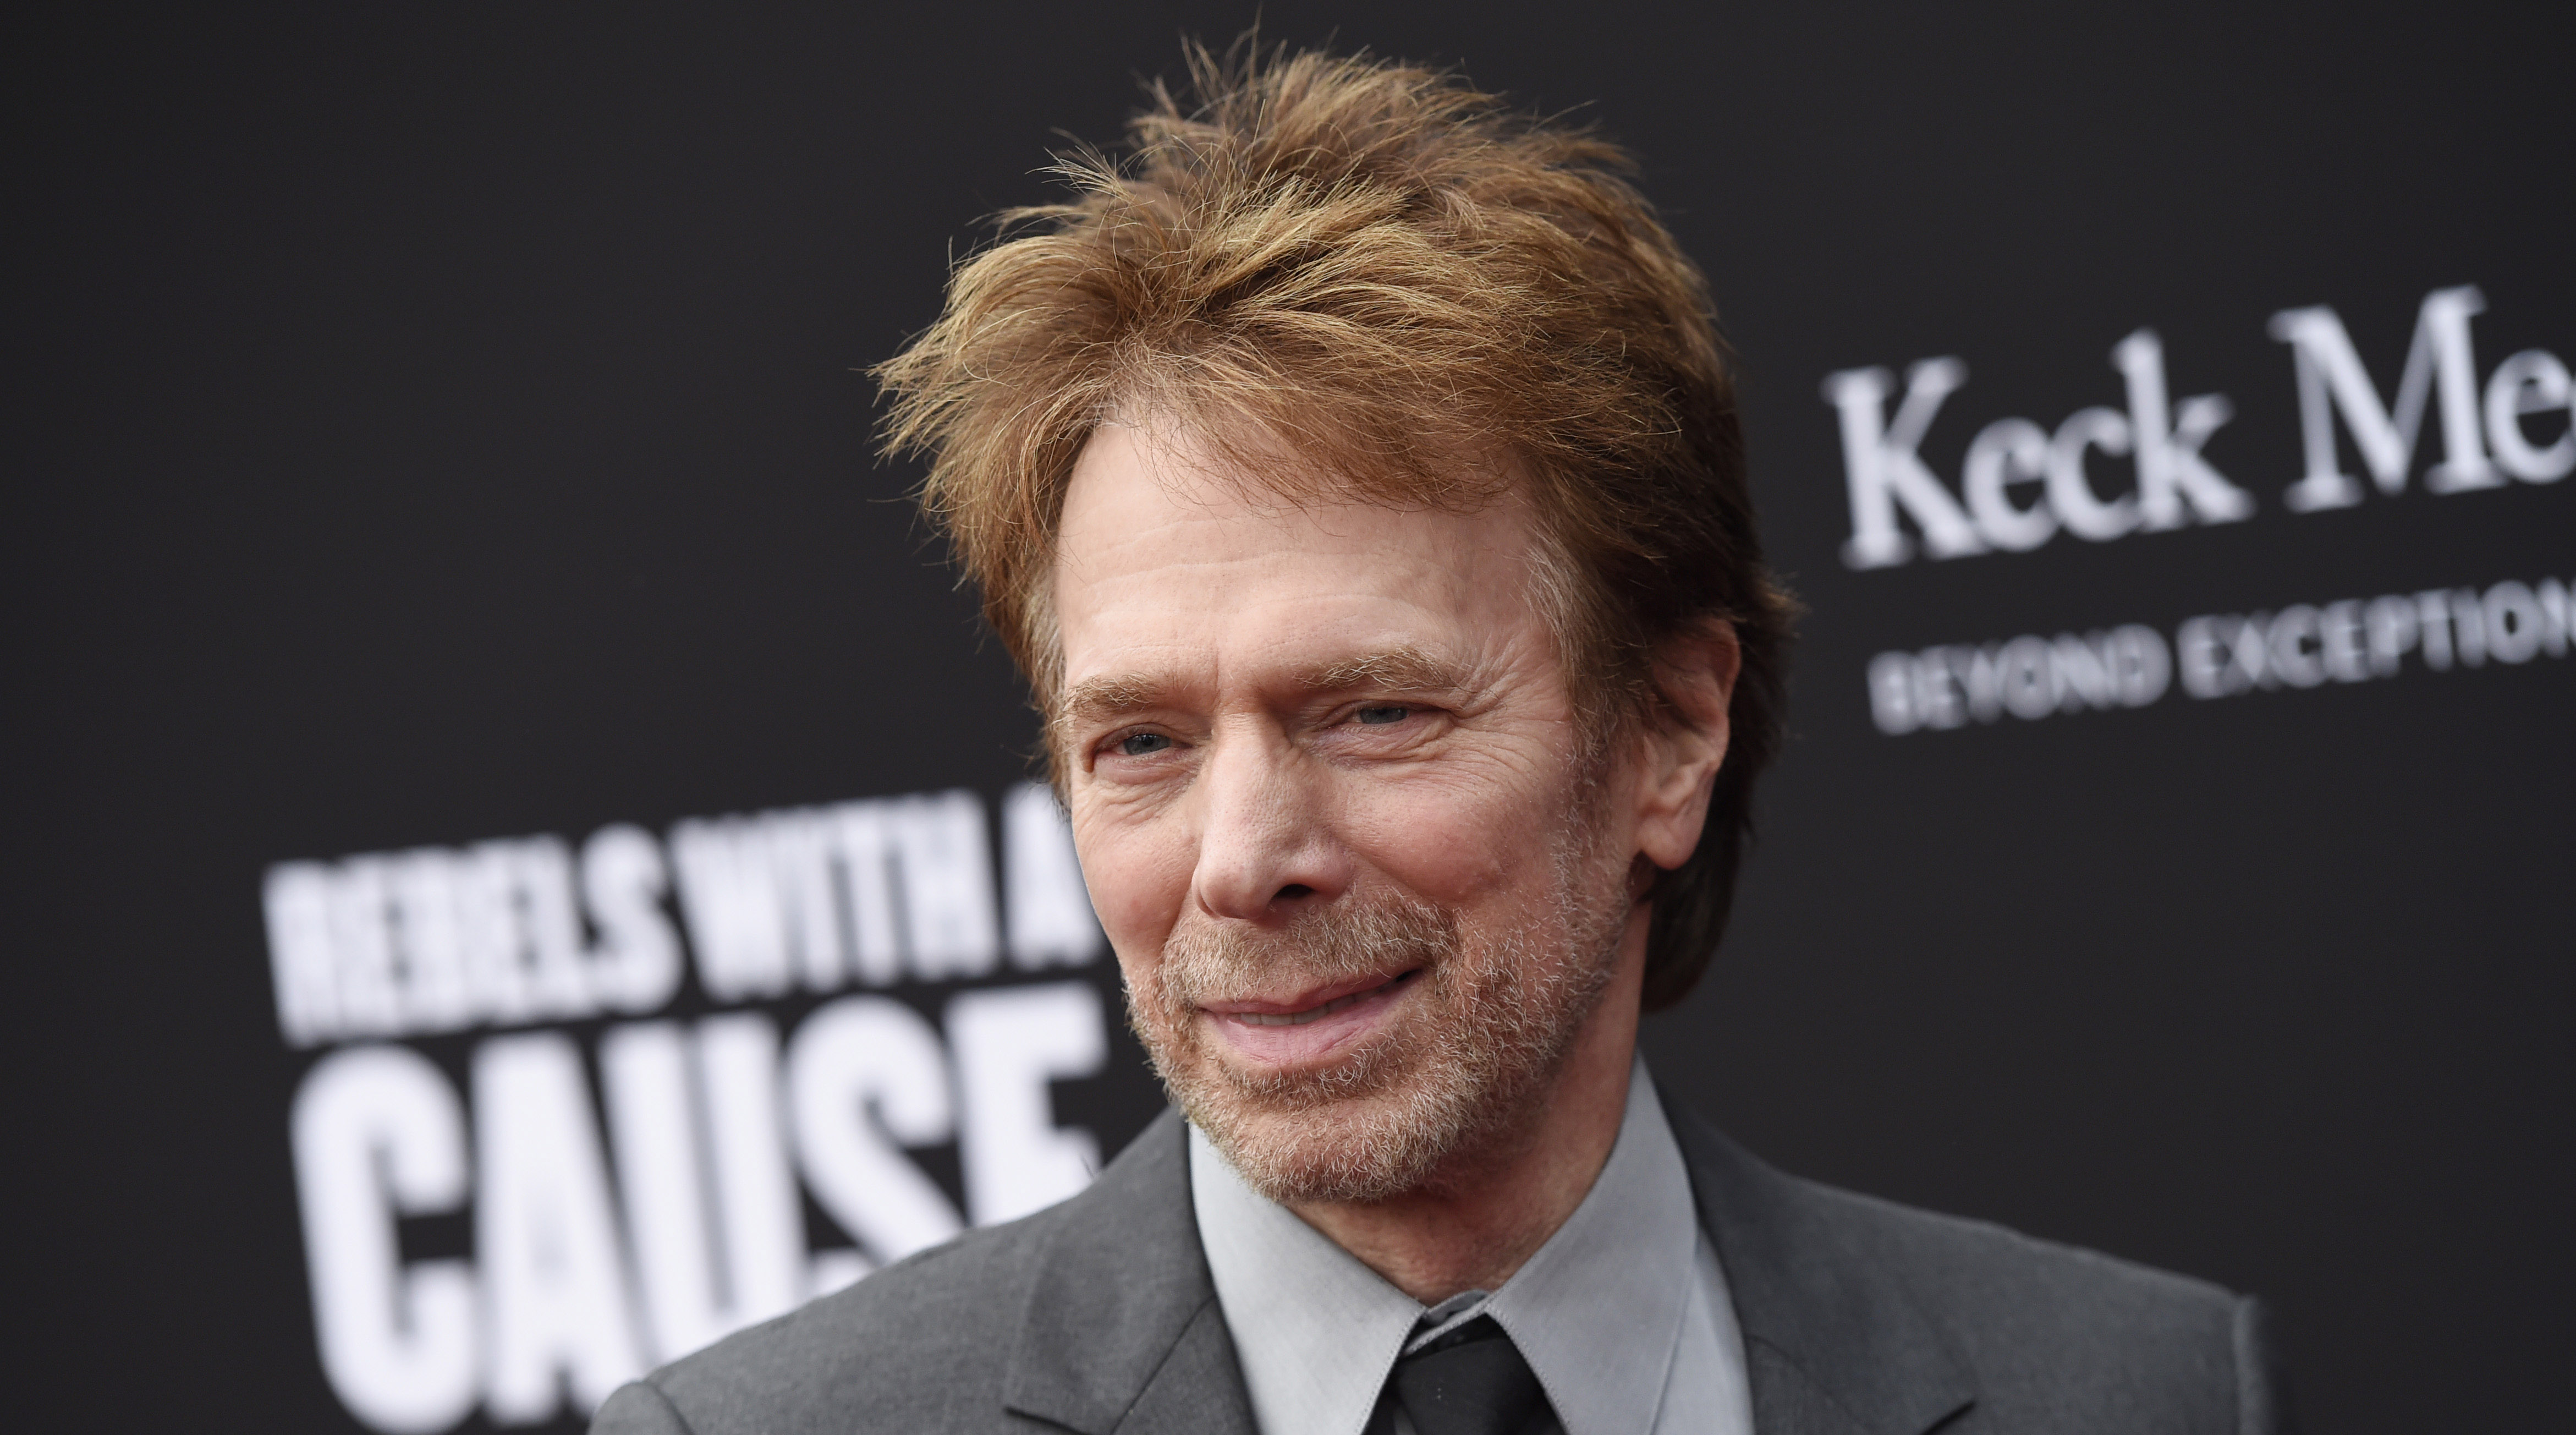 Sports Illustrated is teaming up with Jerry Bruckheimer Productions to develop a new TV series.